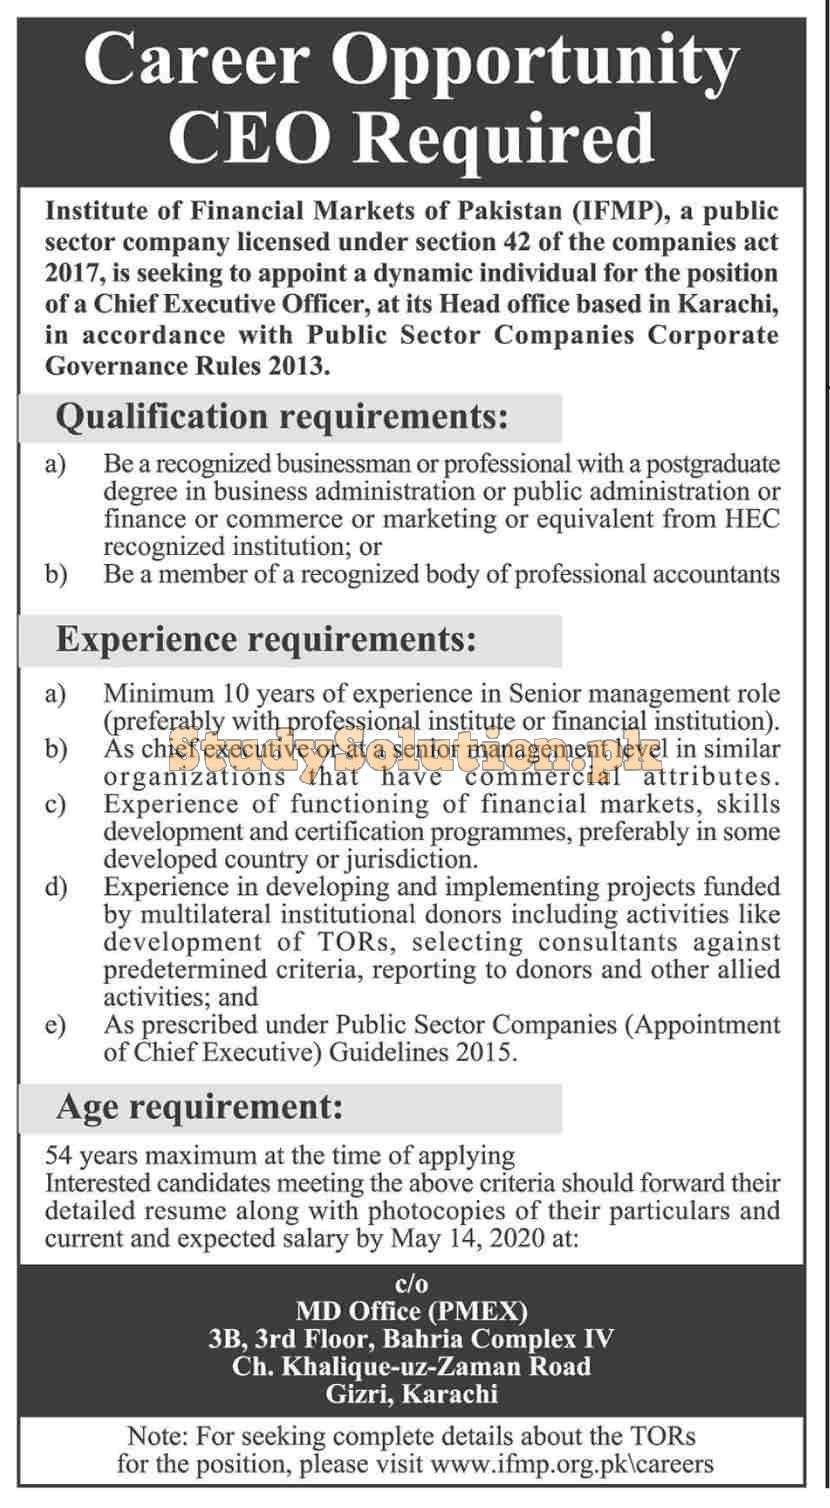 Institute of Financial Markets of Pakistan (IFMP) Jobs May 2020